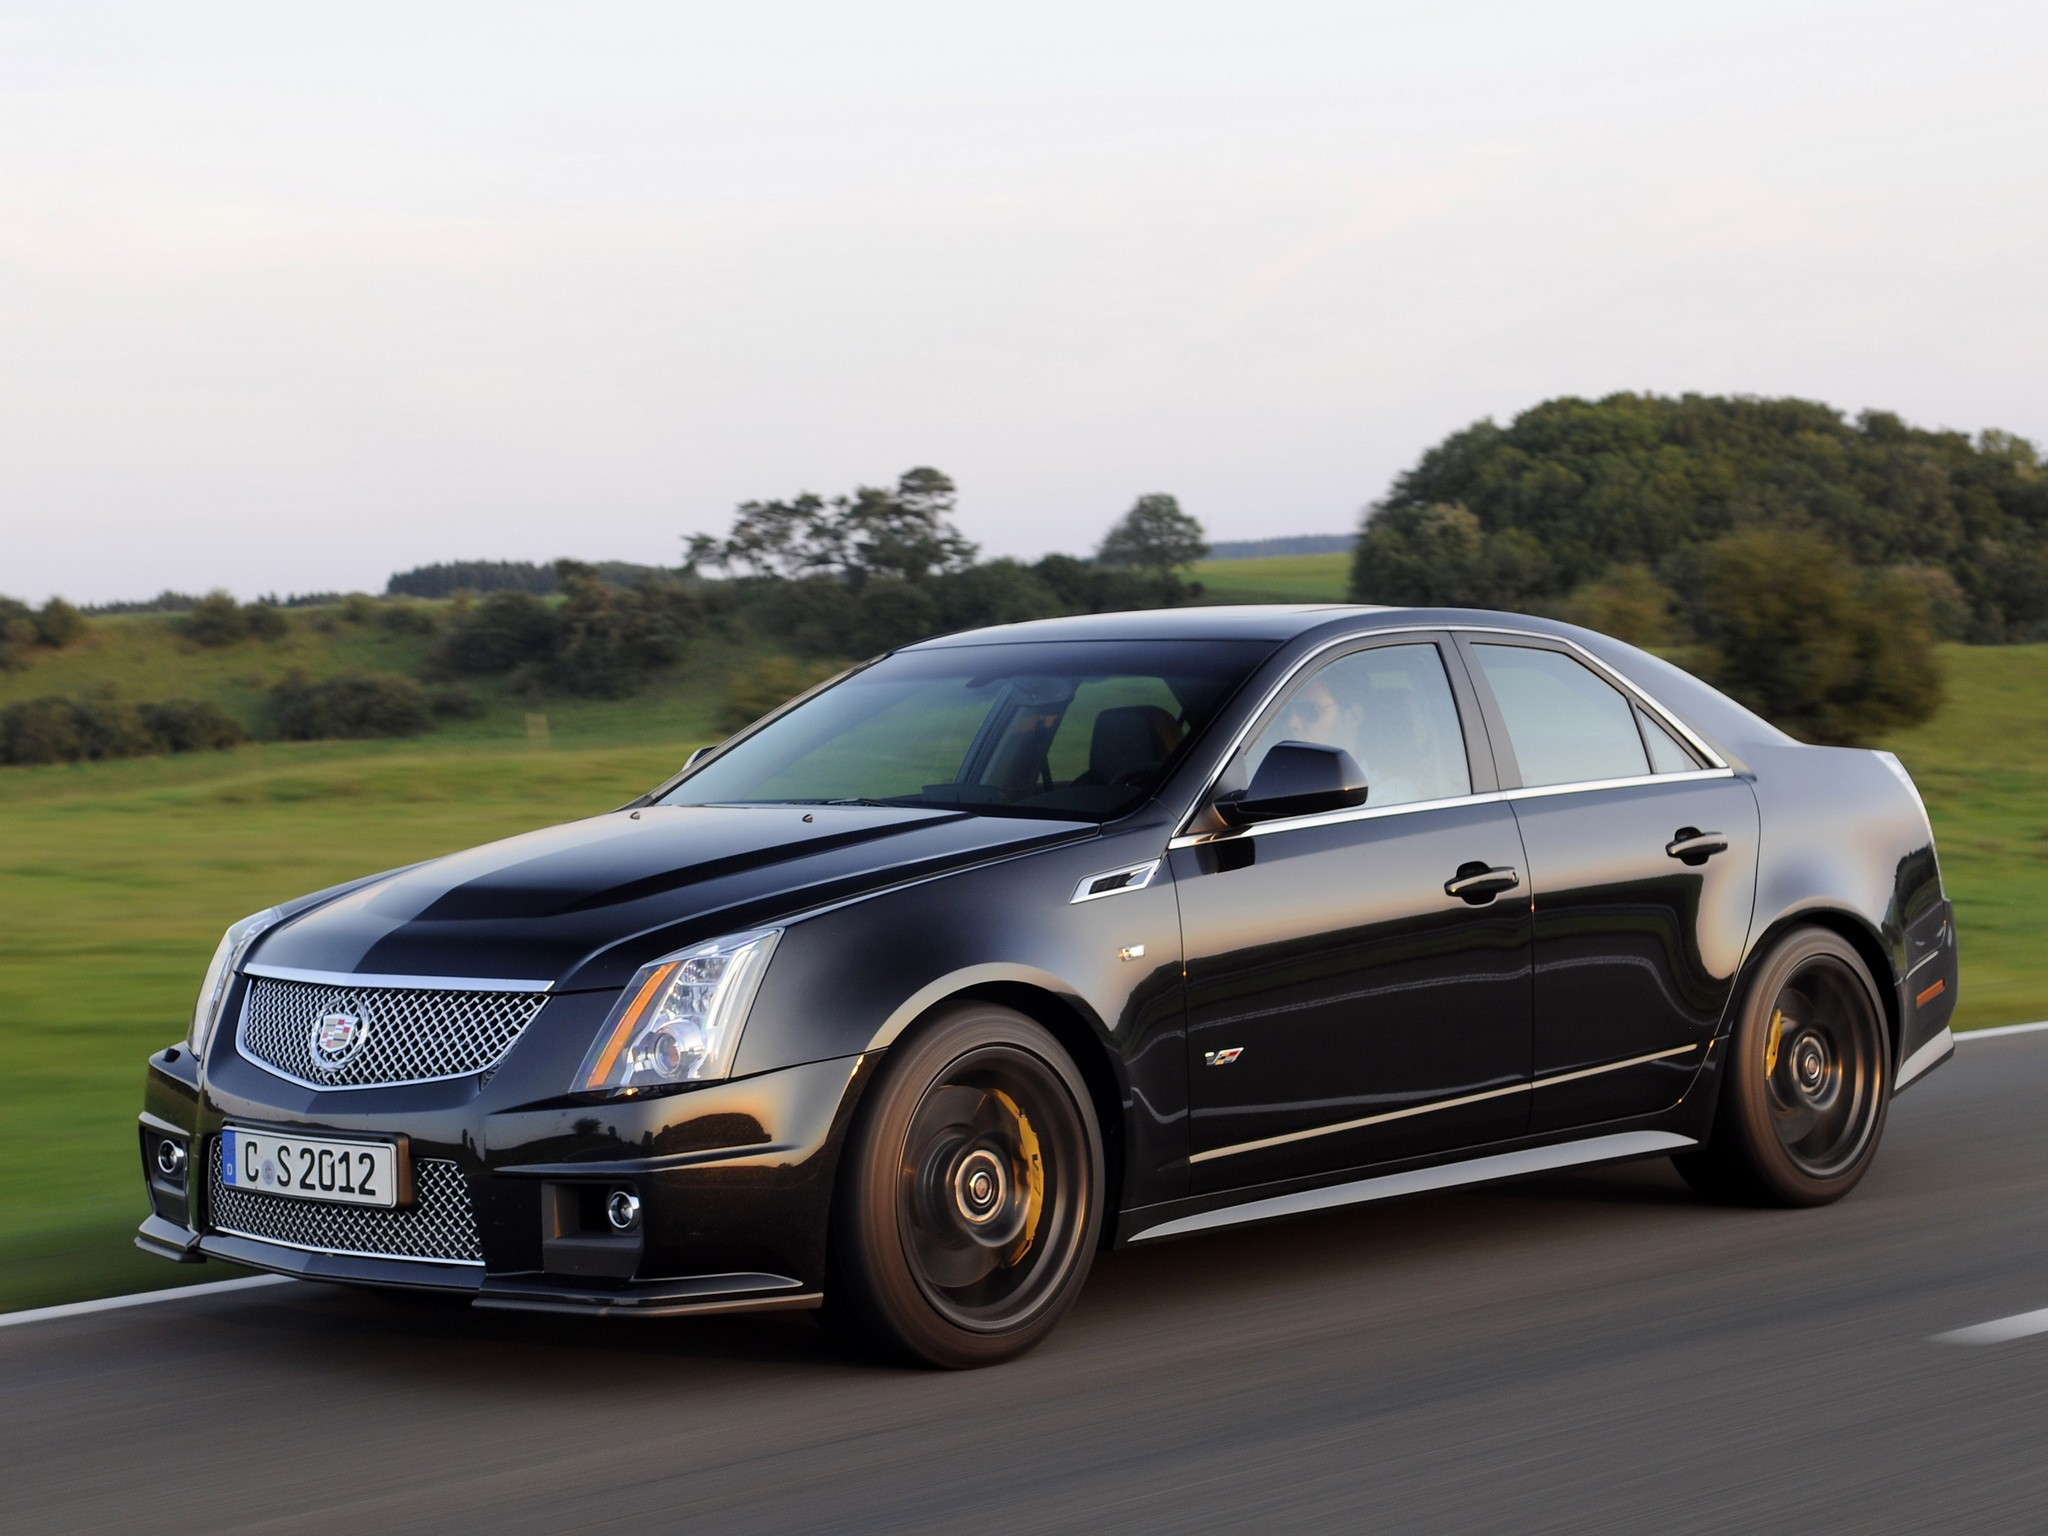 cadillac cts v specs 2008 2009 2010 2011 2012 2013 2014 2015 autoevolution. Black Bedroom Furniture Sets. Home Design Ideas